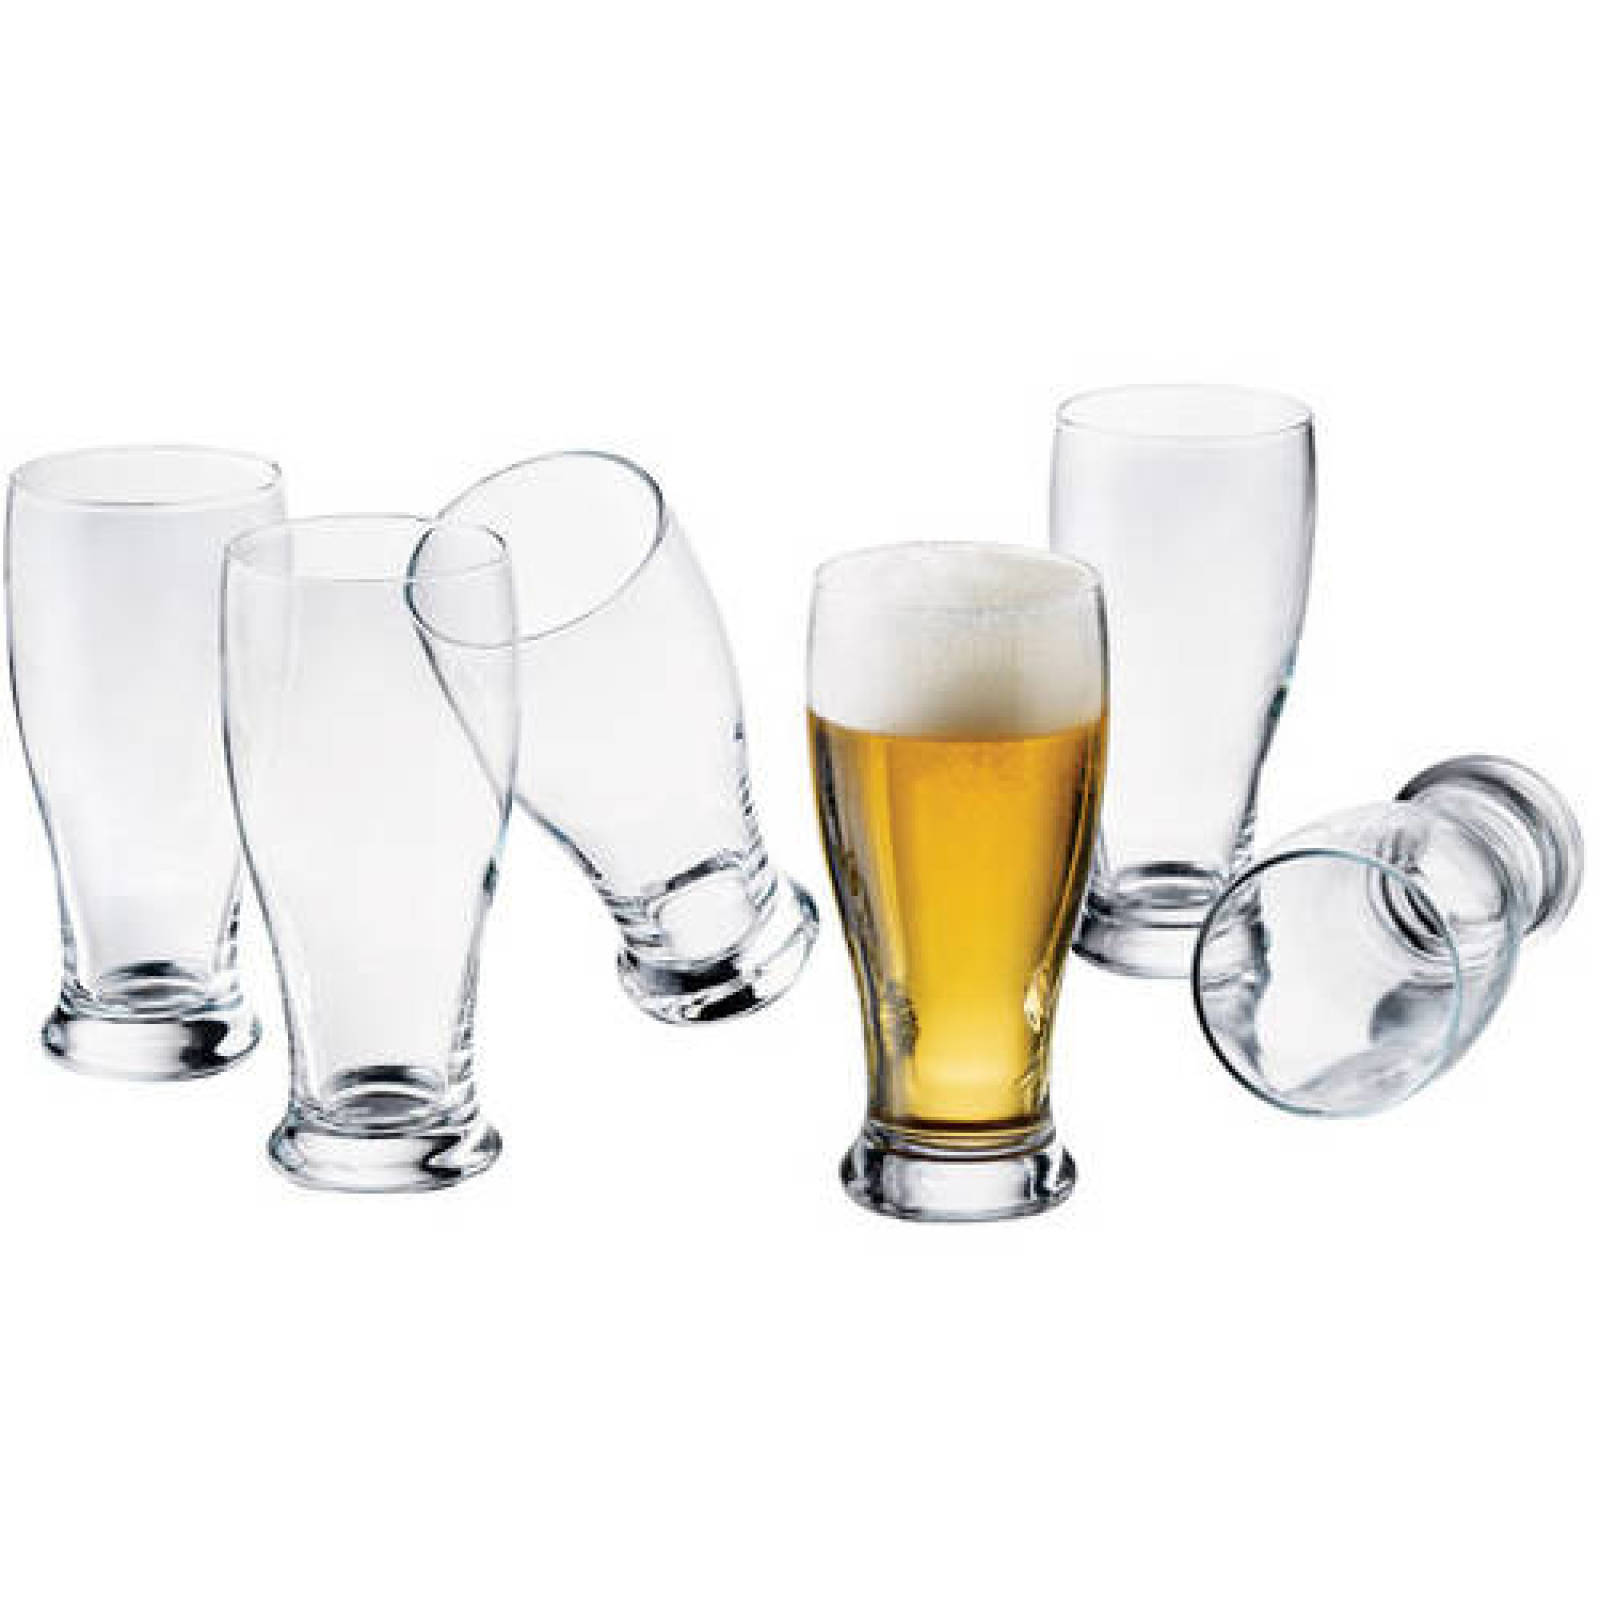 Set of 8 Libbey Clear Glass 19-oz. Beer Pub Glasses New